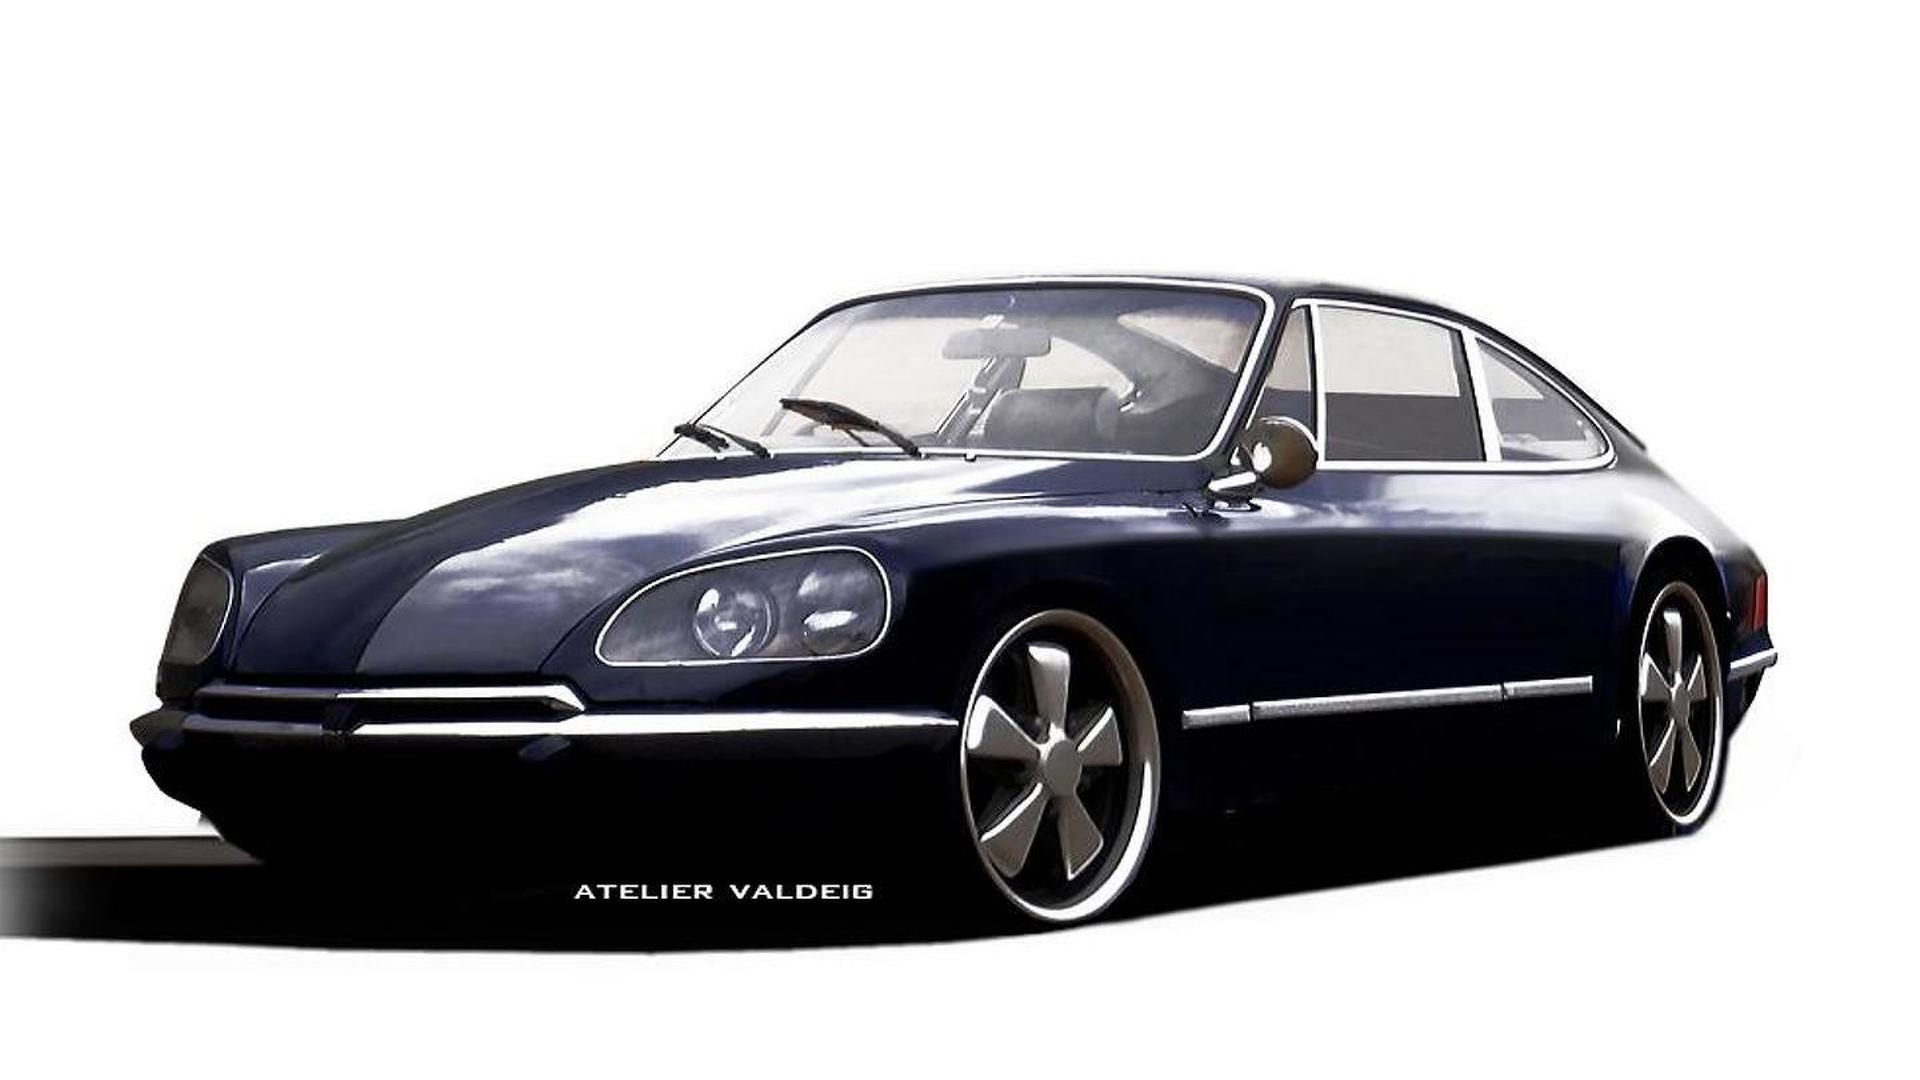 Porsche Citroen 911 DS rendered the other way around